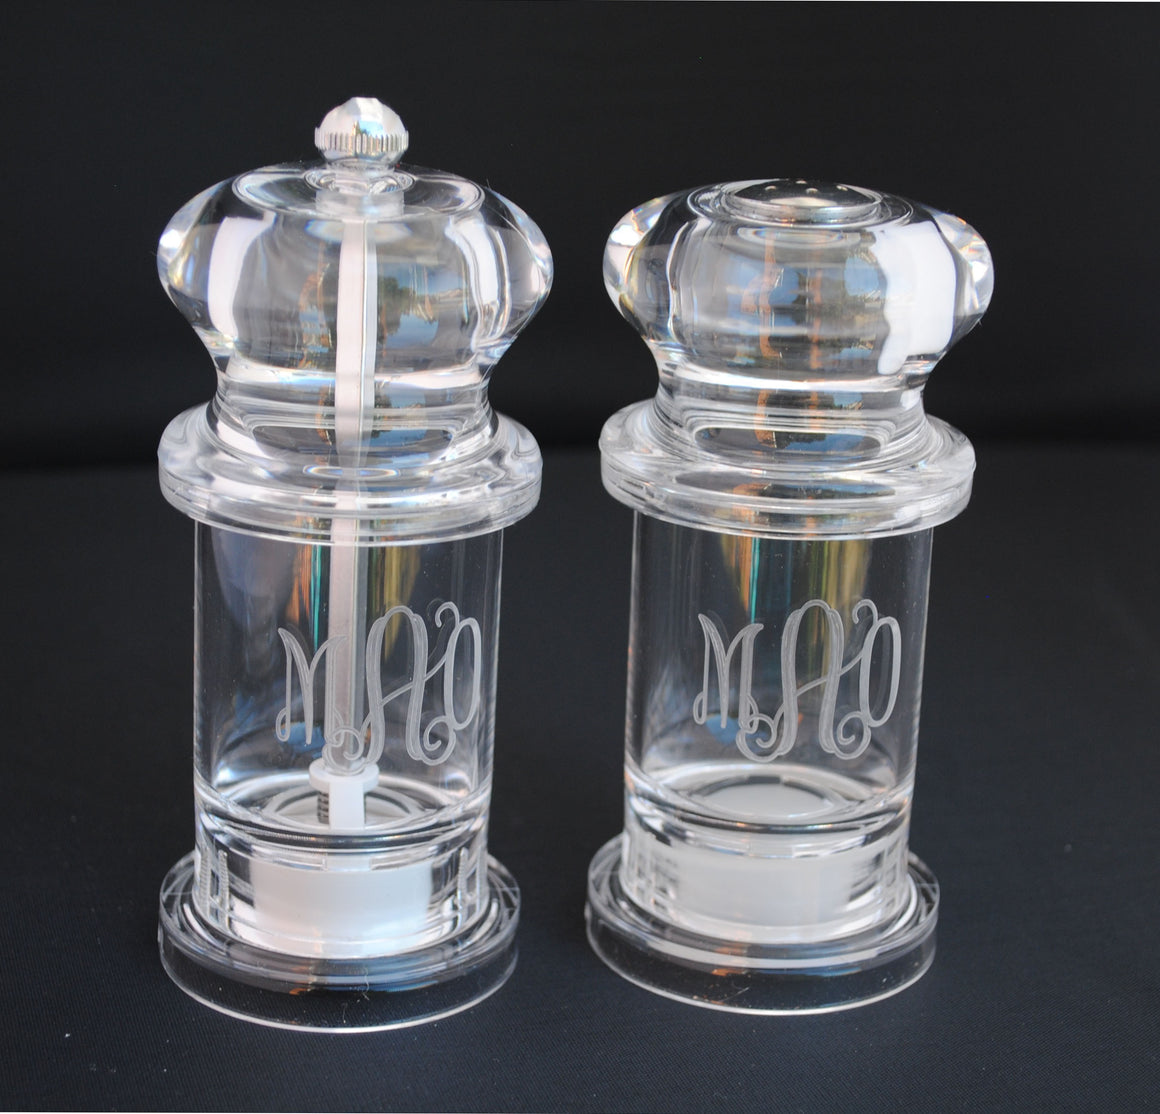 Monogrammed Personalized Clear Acrylic Lucite Salt and Pepper shaker grinder Set shower gift house warming gift hostess gift